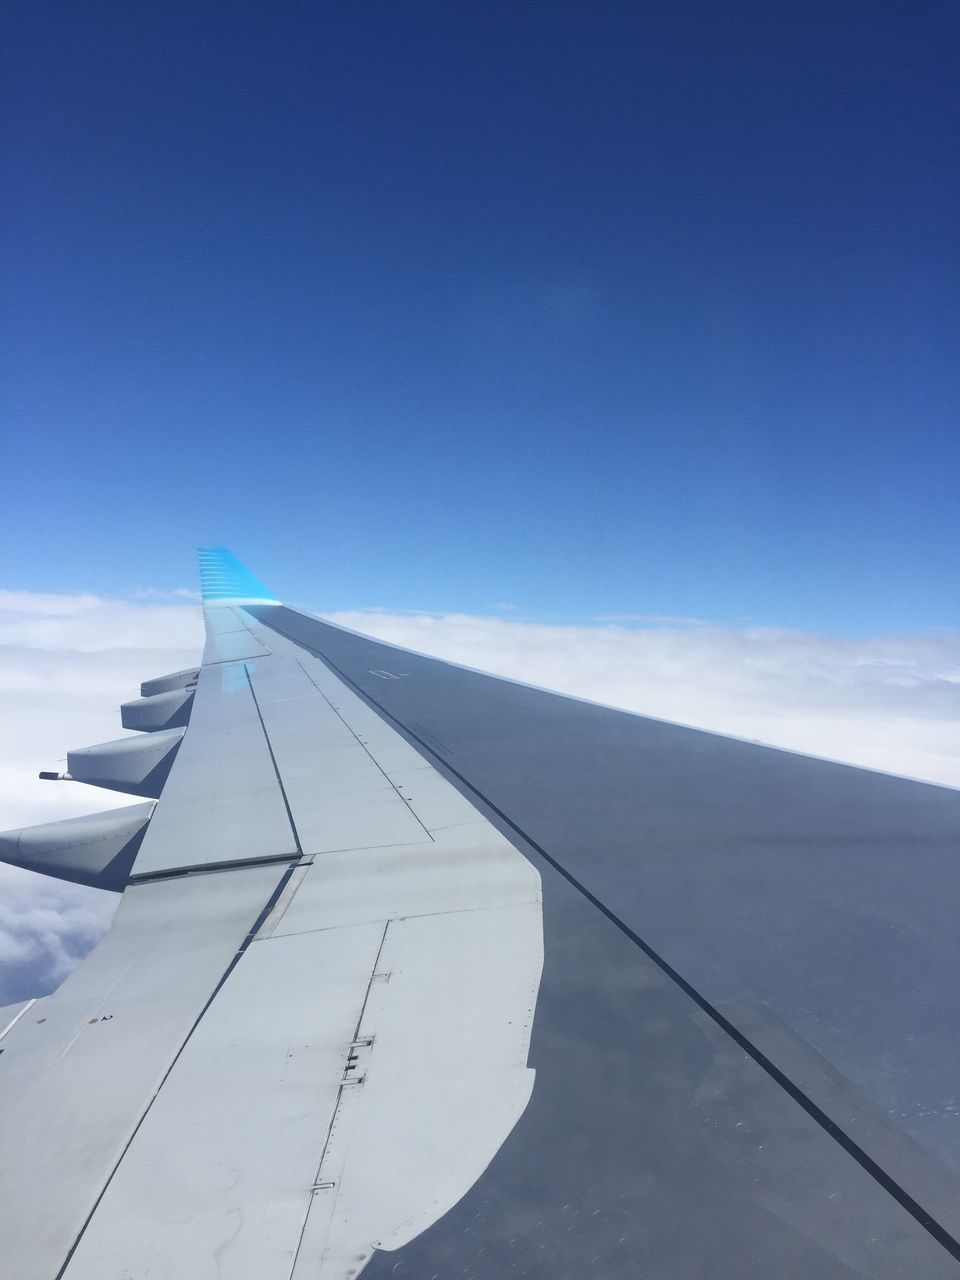 airplane, transportation, travel, blue, air vehicle, sky, mode of transport, journey, flying, no people, day, airplane wing, aircraft wing, outdoors, cloud - sky, nature, commercial airplane, close-up